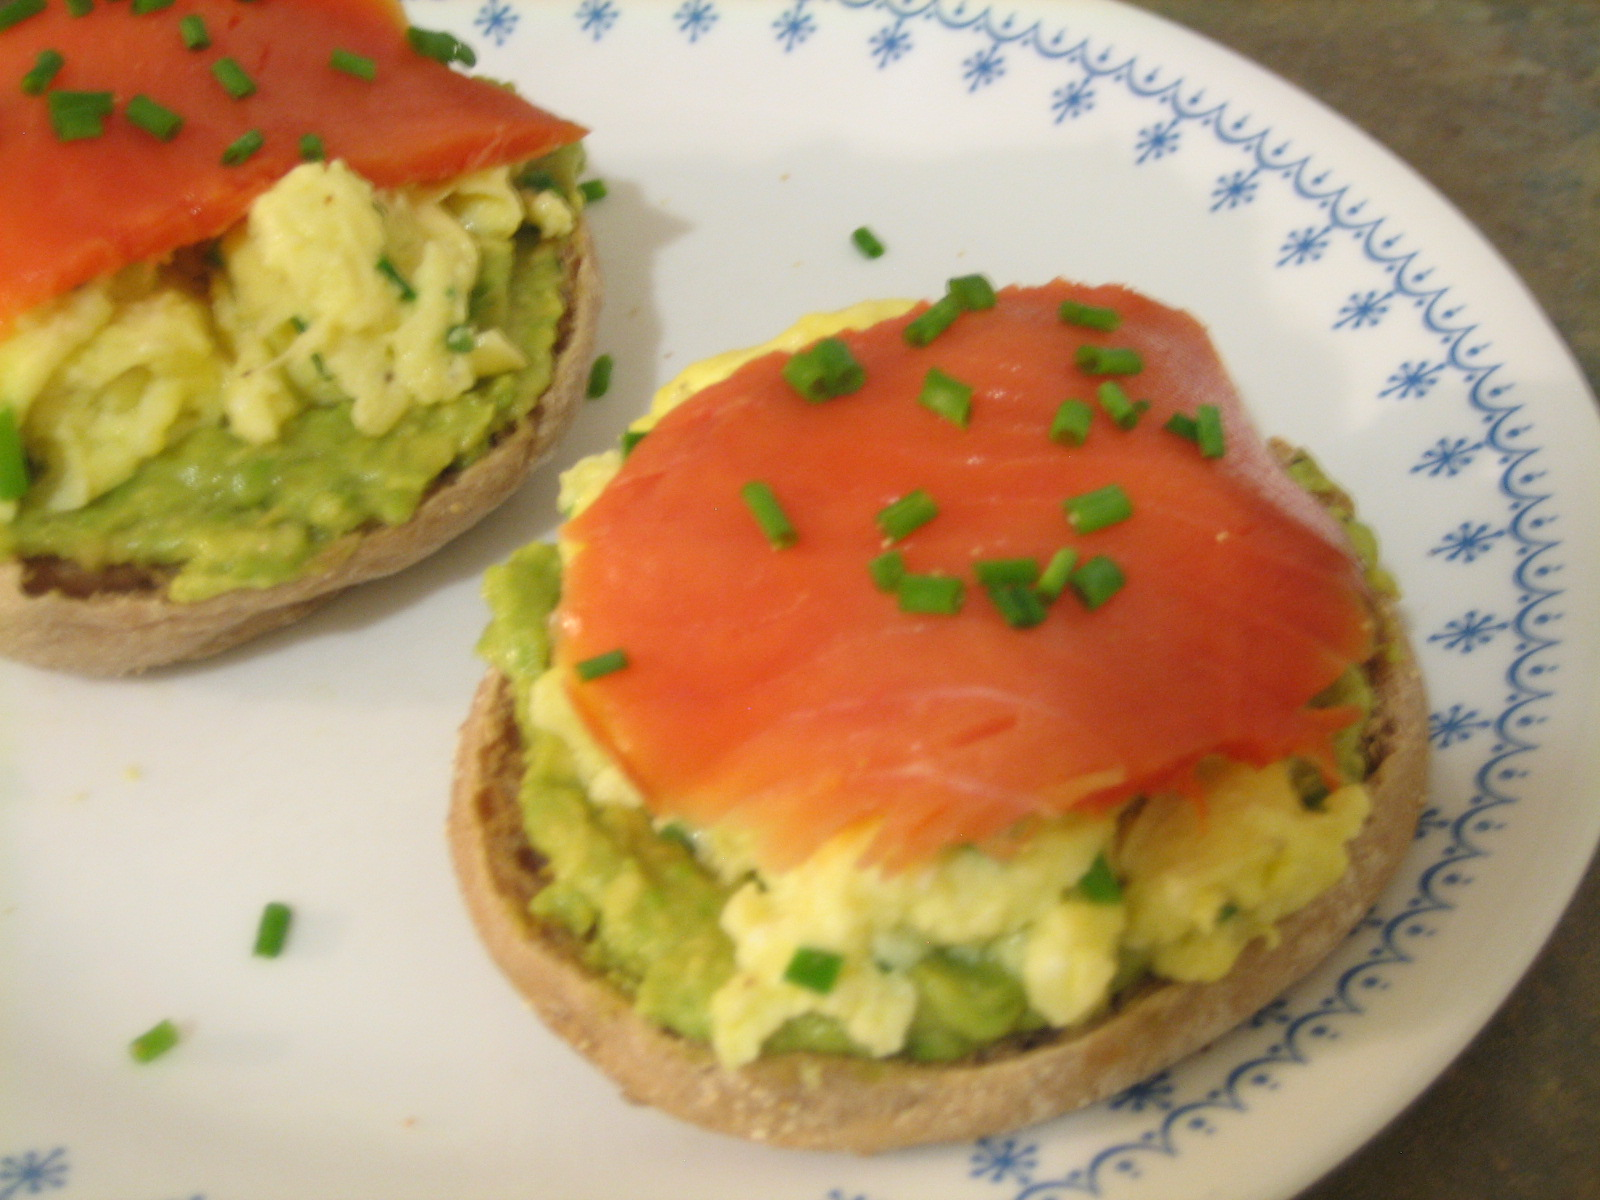 Fluffy Scrambled Eggs And Avocado Slices On Toast Recipe ...